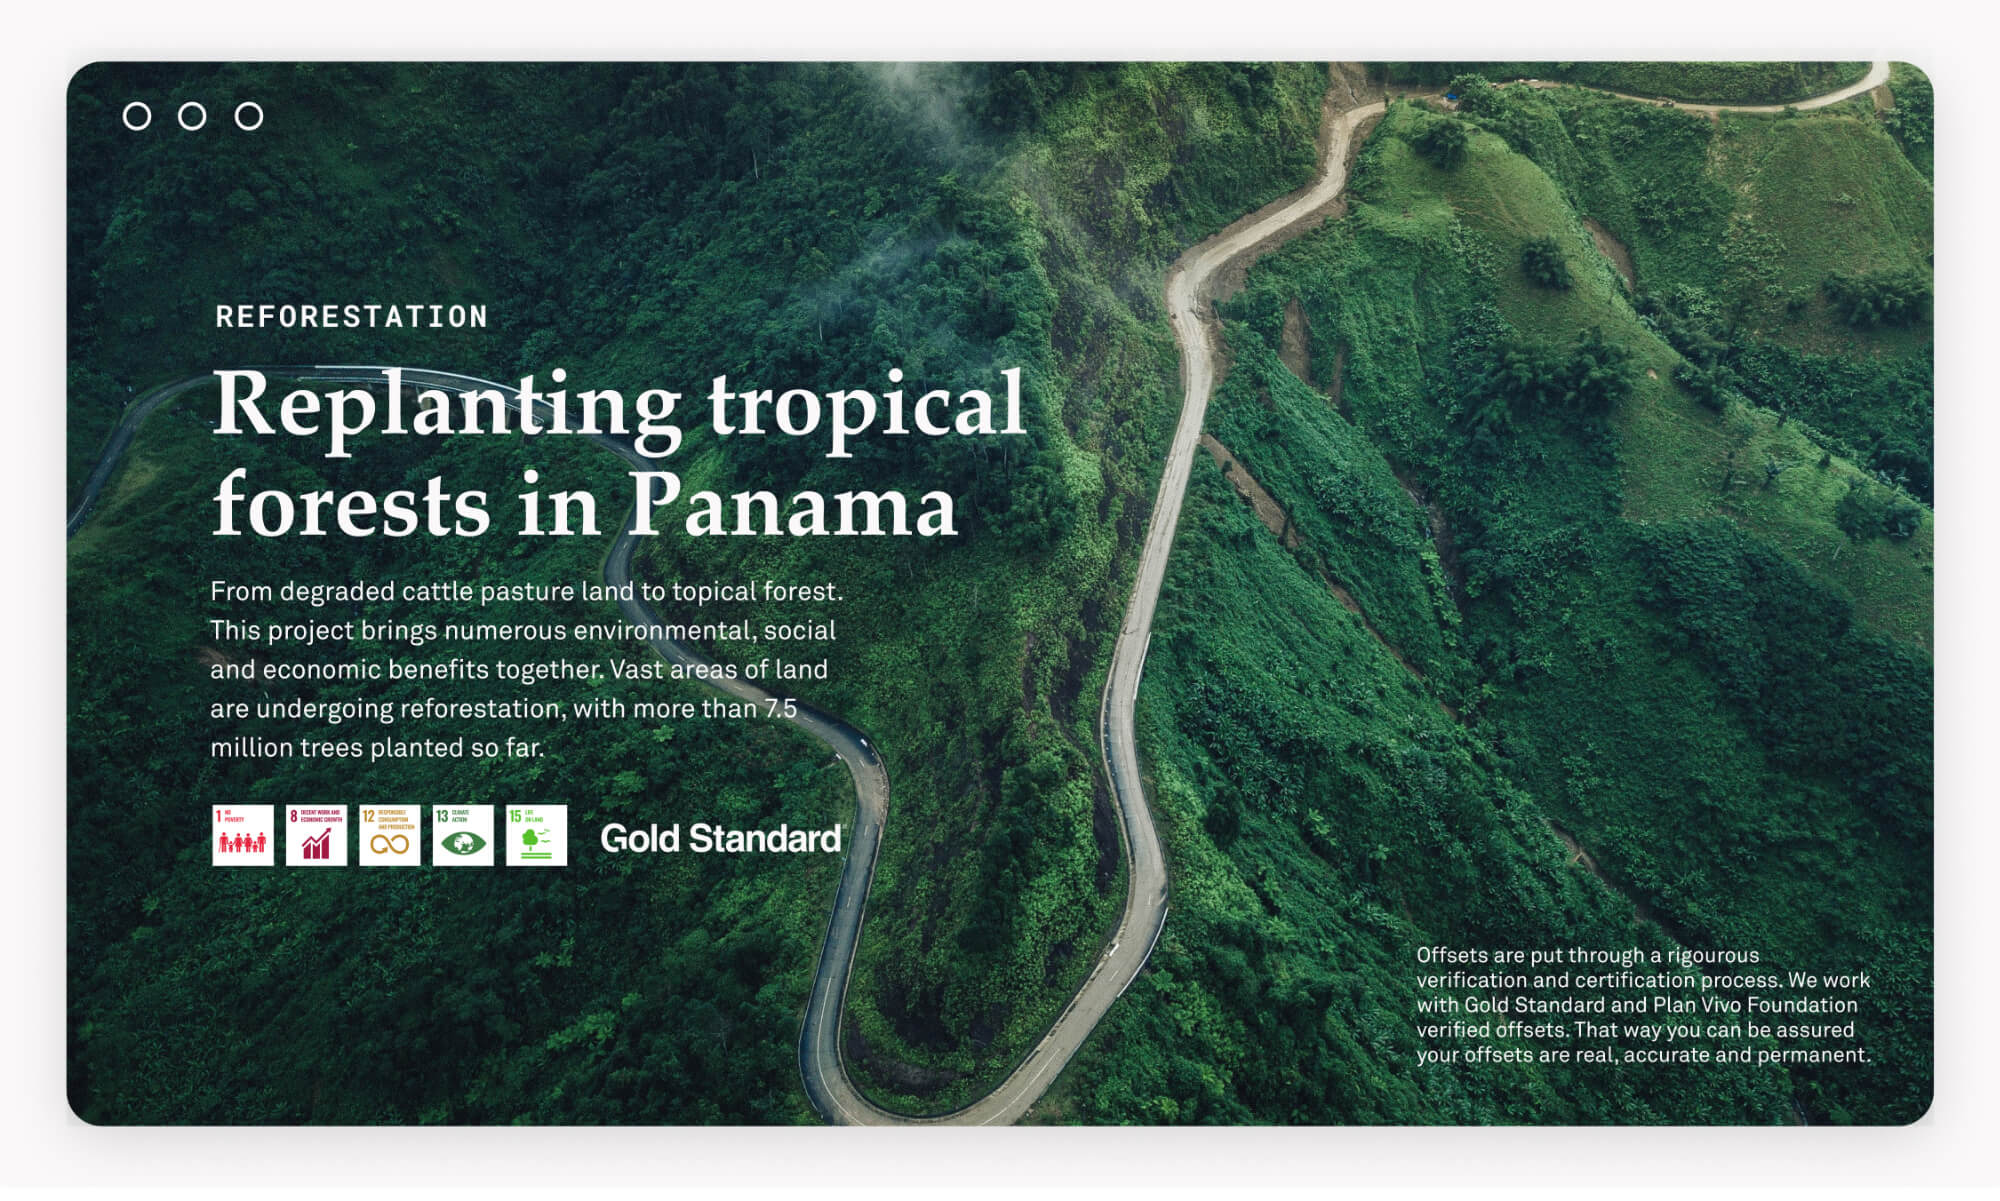 "Screenshot of projects that can be chosen within Nul. It Describes a specific project called ""Replanting tropical forests in Panama"" as a reforestation projects, the standard itself certified under (Gold Standard), the United Nations Sustainable Development Goals and a background image of a lush green forest with a winding road running through it."